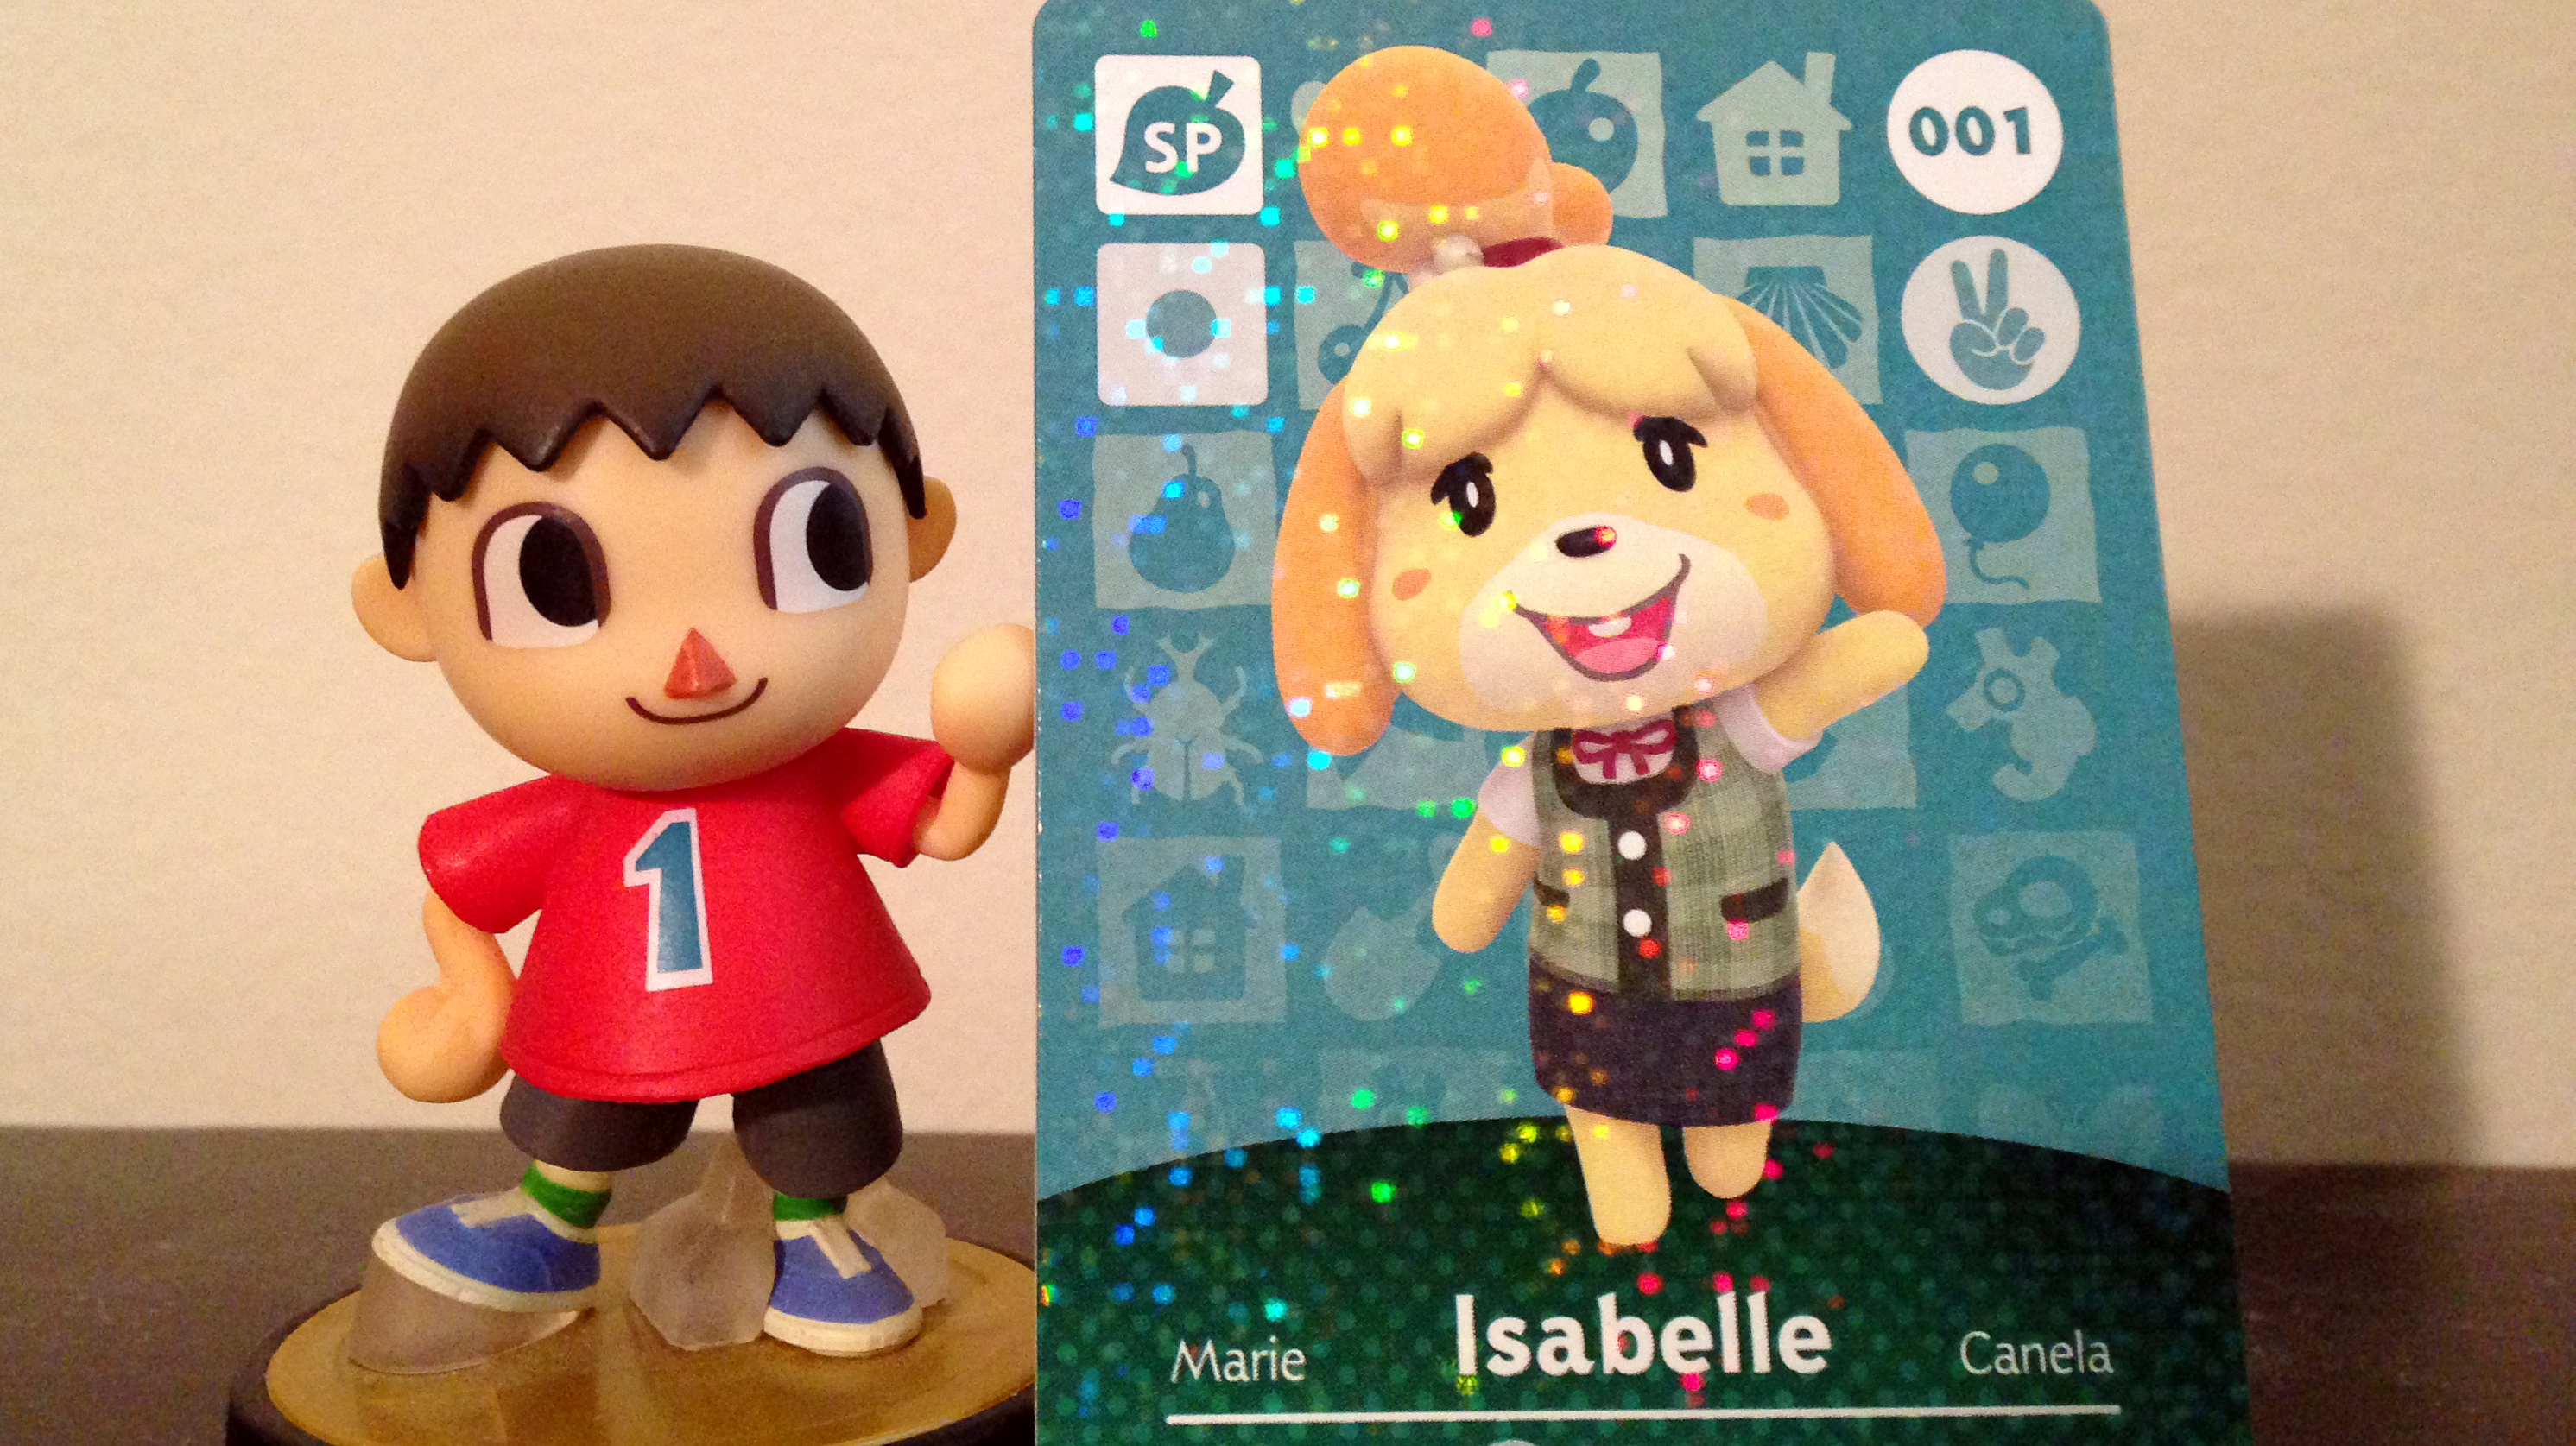 The animal crossing™ series is filled with characters who have lots of humor and personality, and now you can get to know them better with amiibo™ cards. An Animal Crossing amiibo cards examination   Michibiku